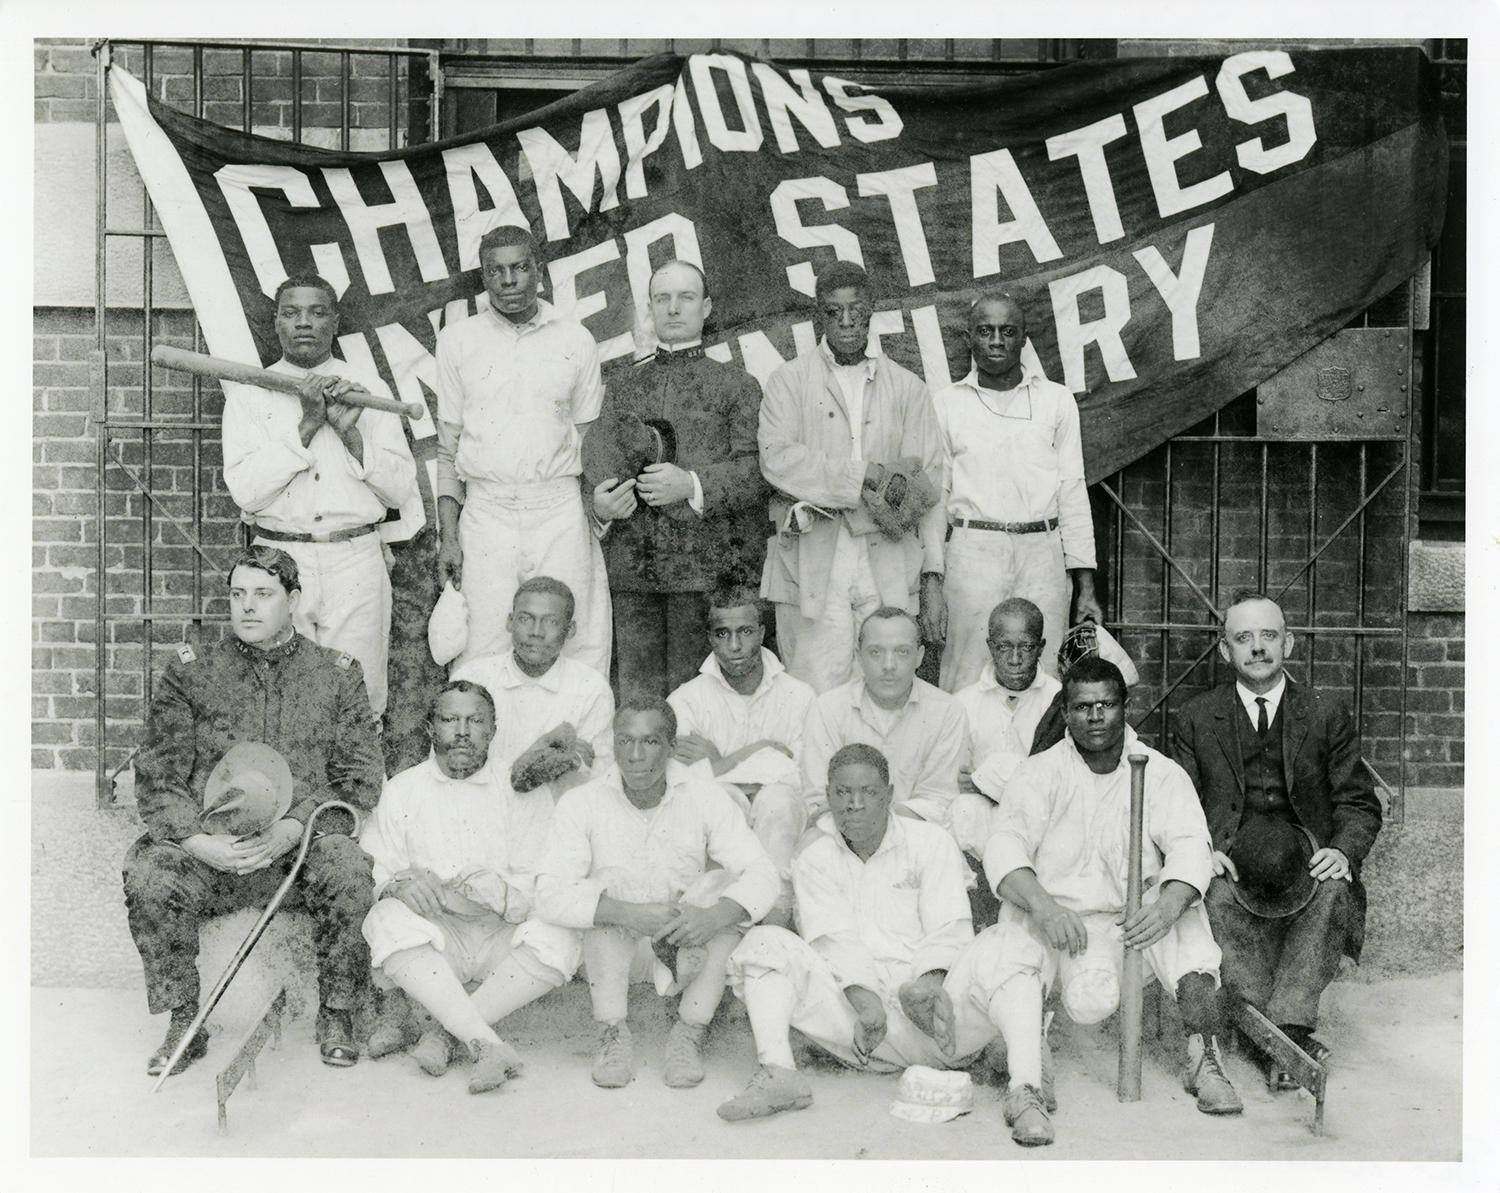 """An April 6, 1913, edition of the <em>Boston Daily Globe</em> told readers that Opening Day at Atlanta's Federal Penitentiary was """"[a]ttended by all the conventional ceremonies of a big league,"""" including a parade led by a prison band, and the raising of the previous year's championship flag, won by the Giants, a team of men from the Penitentiary stone-cutting shop. (National Baseball Hall of Fame)"""